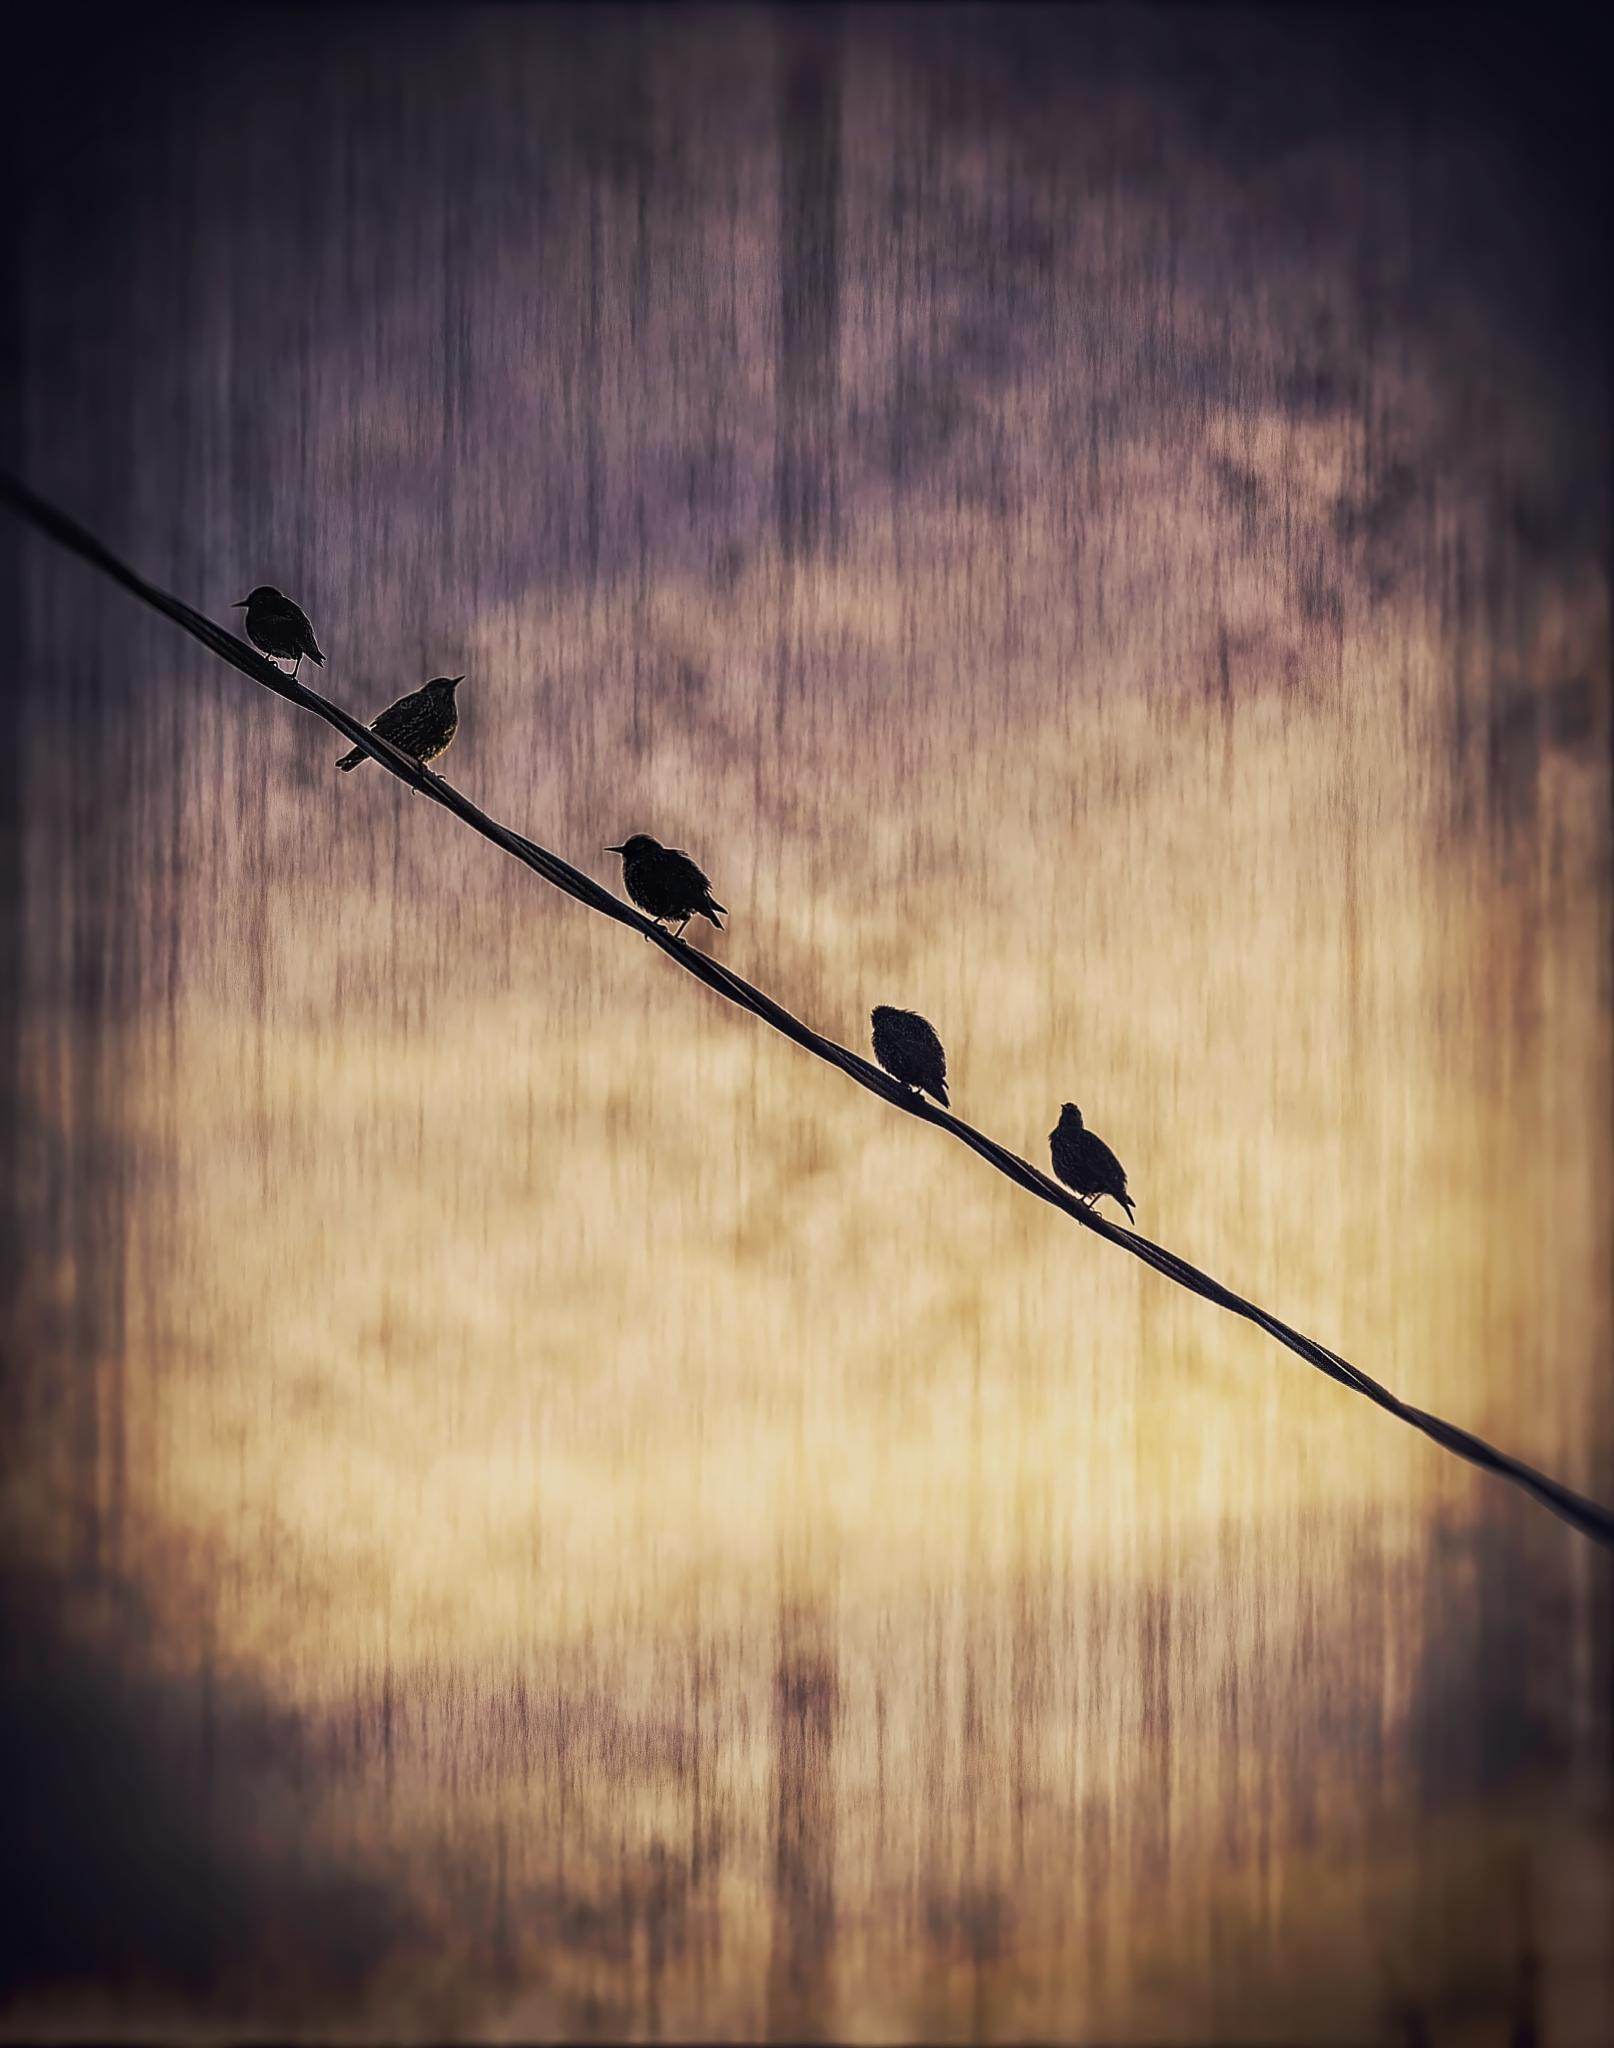 Birds on a Wire by dbreckles